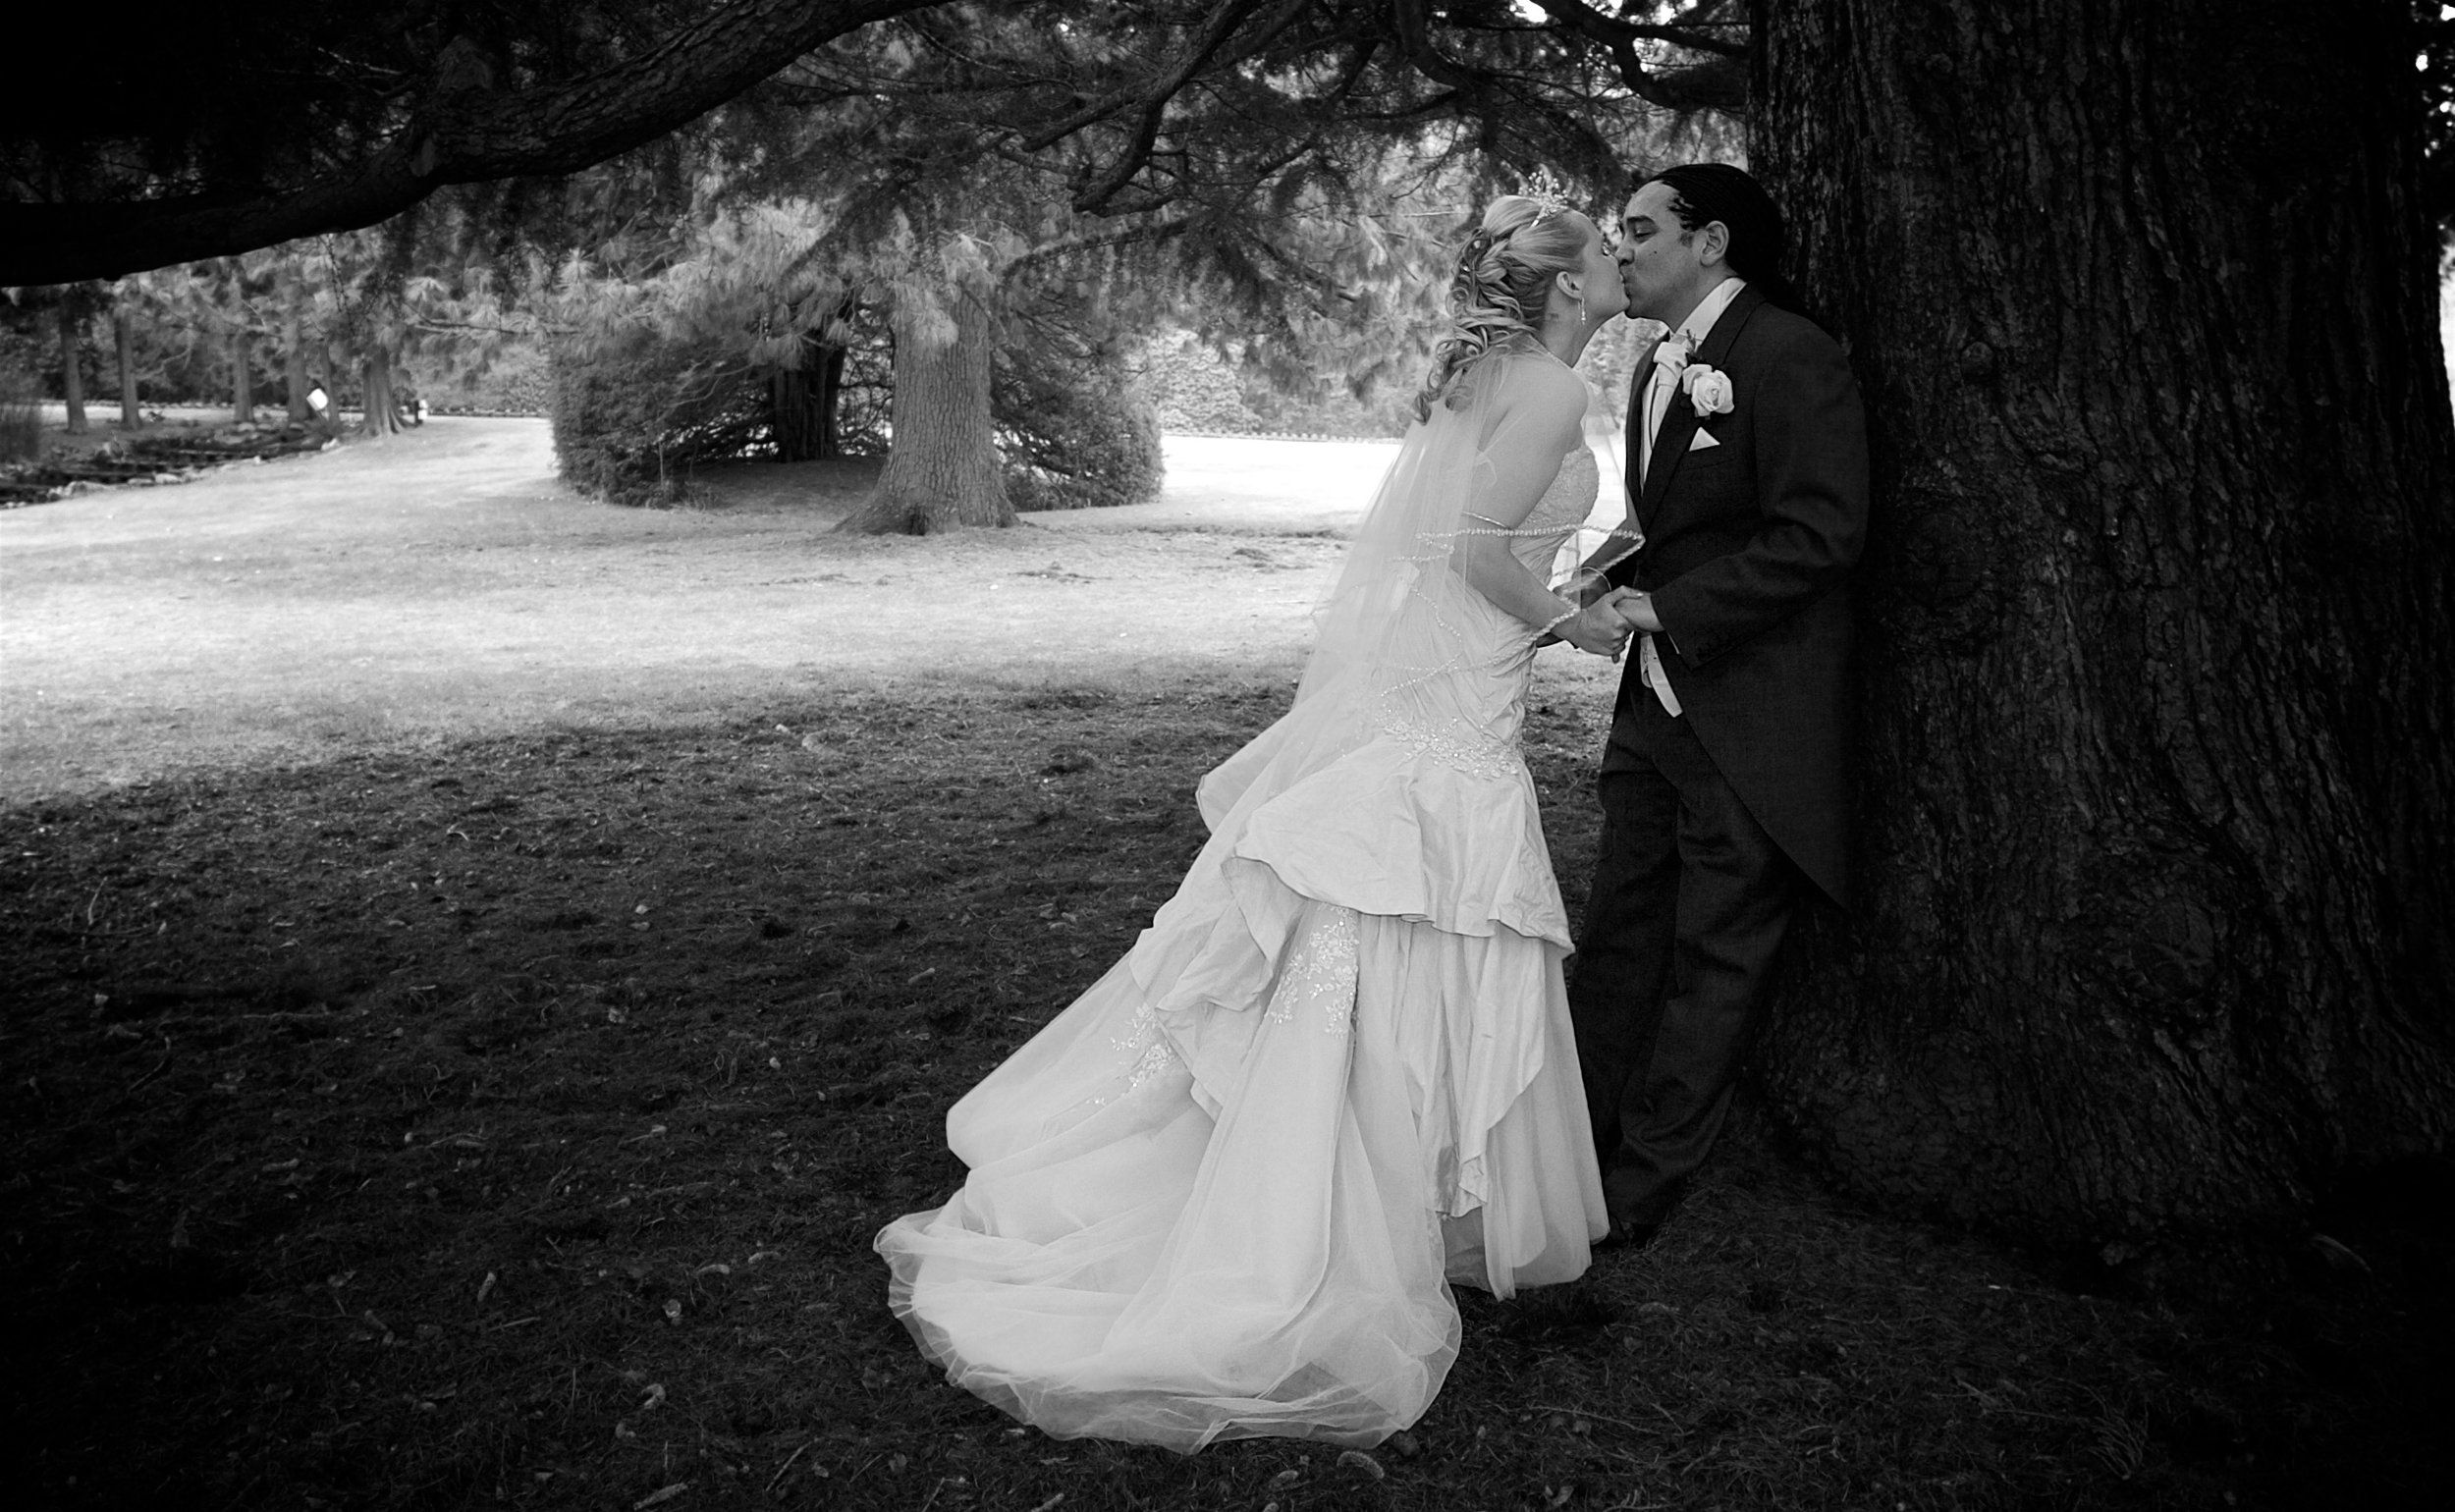 Where the Bride & Groom first met. © Wedding Photography by Vivid Confetti